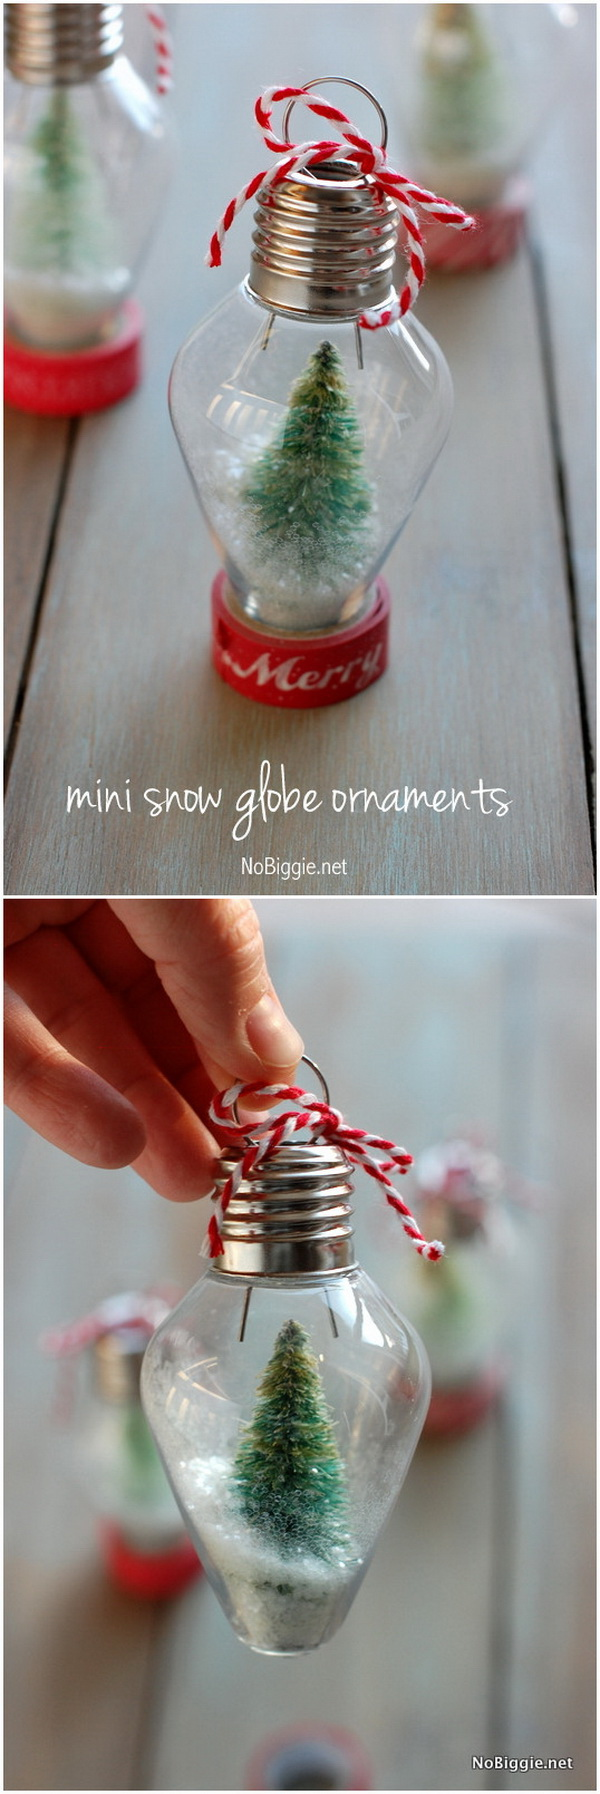 DIY Mini Snow Globe Ornament. Turn the clear plastic old-fashioned Christmas light bulb into the stunning ornament with tiny bottle brush trees inside for your Christmas tree.